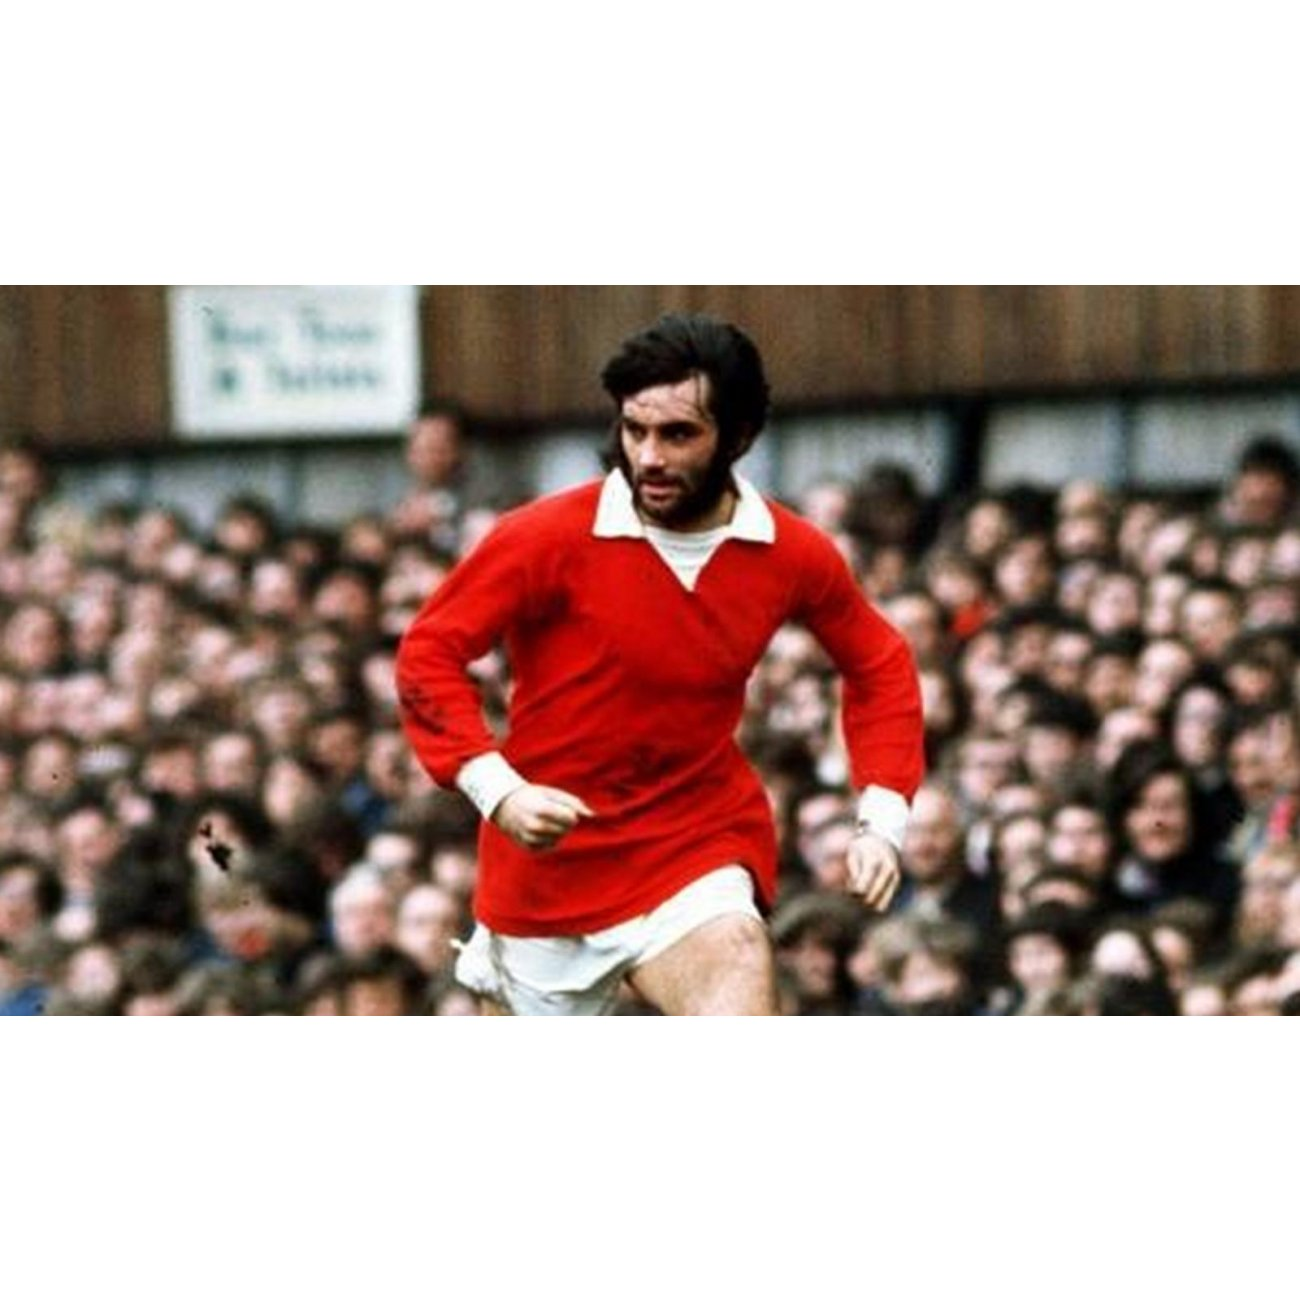 buy online 1efe1 1b2d3 Manchester United, legend George Best, 1970's | Retrofootball®